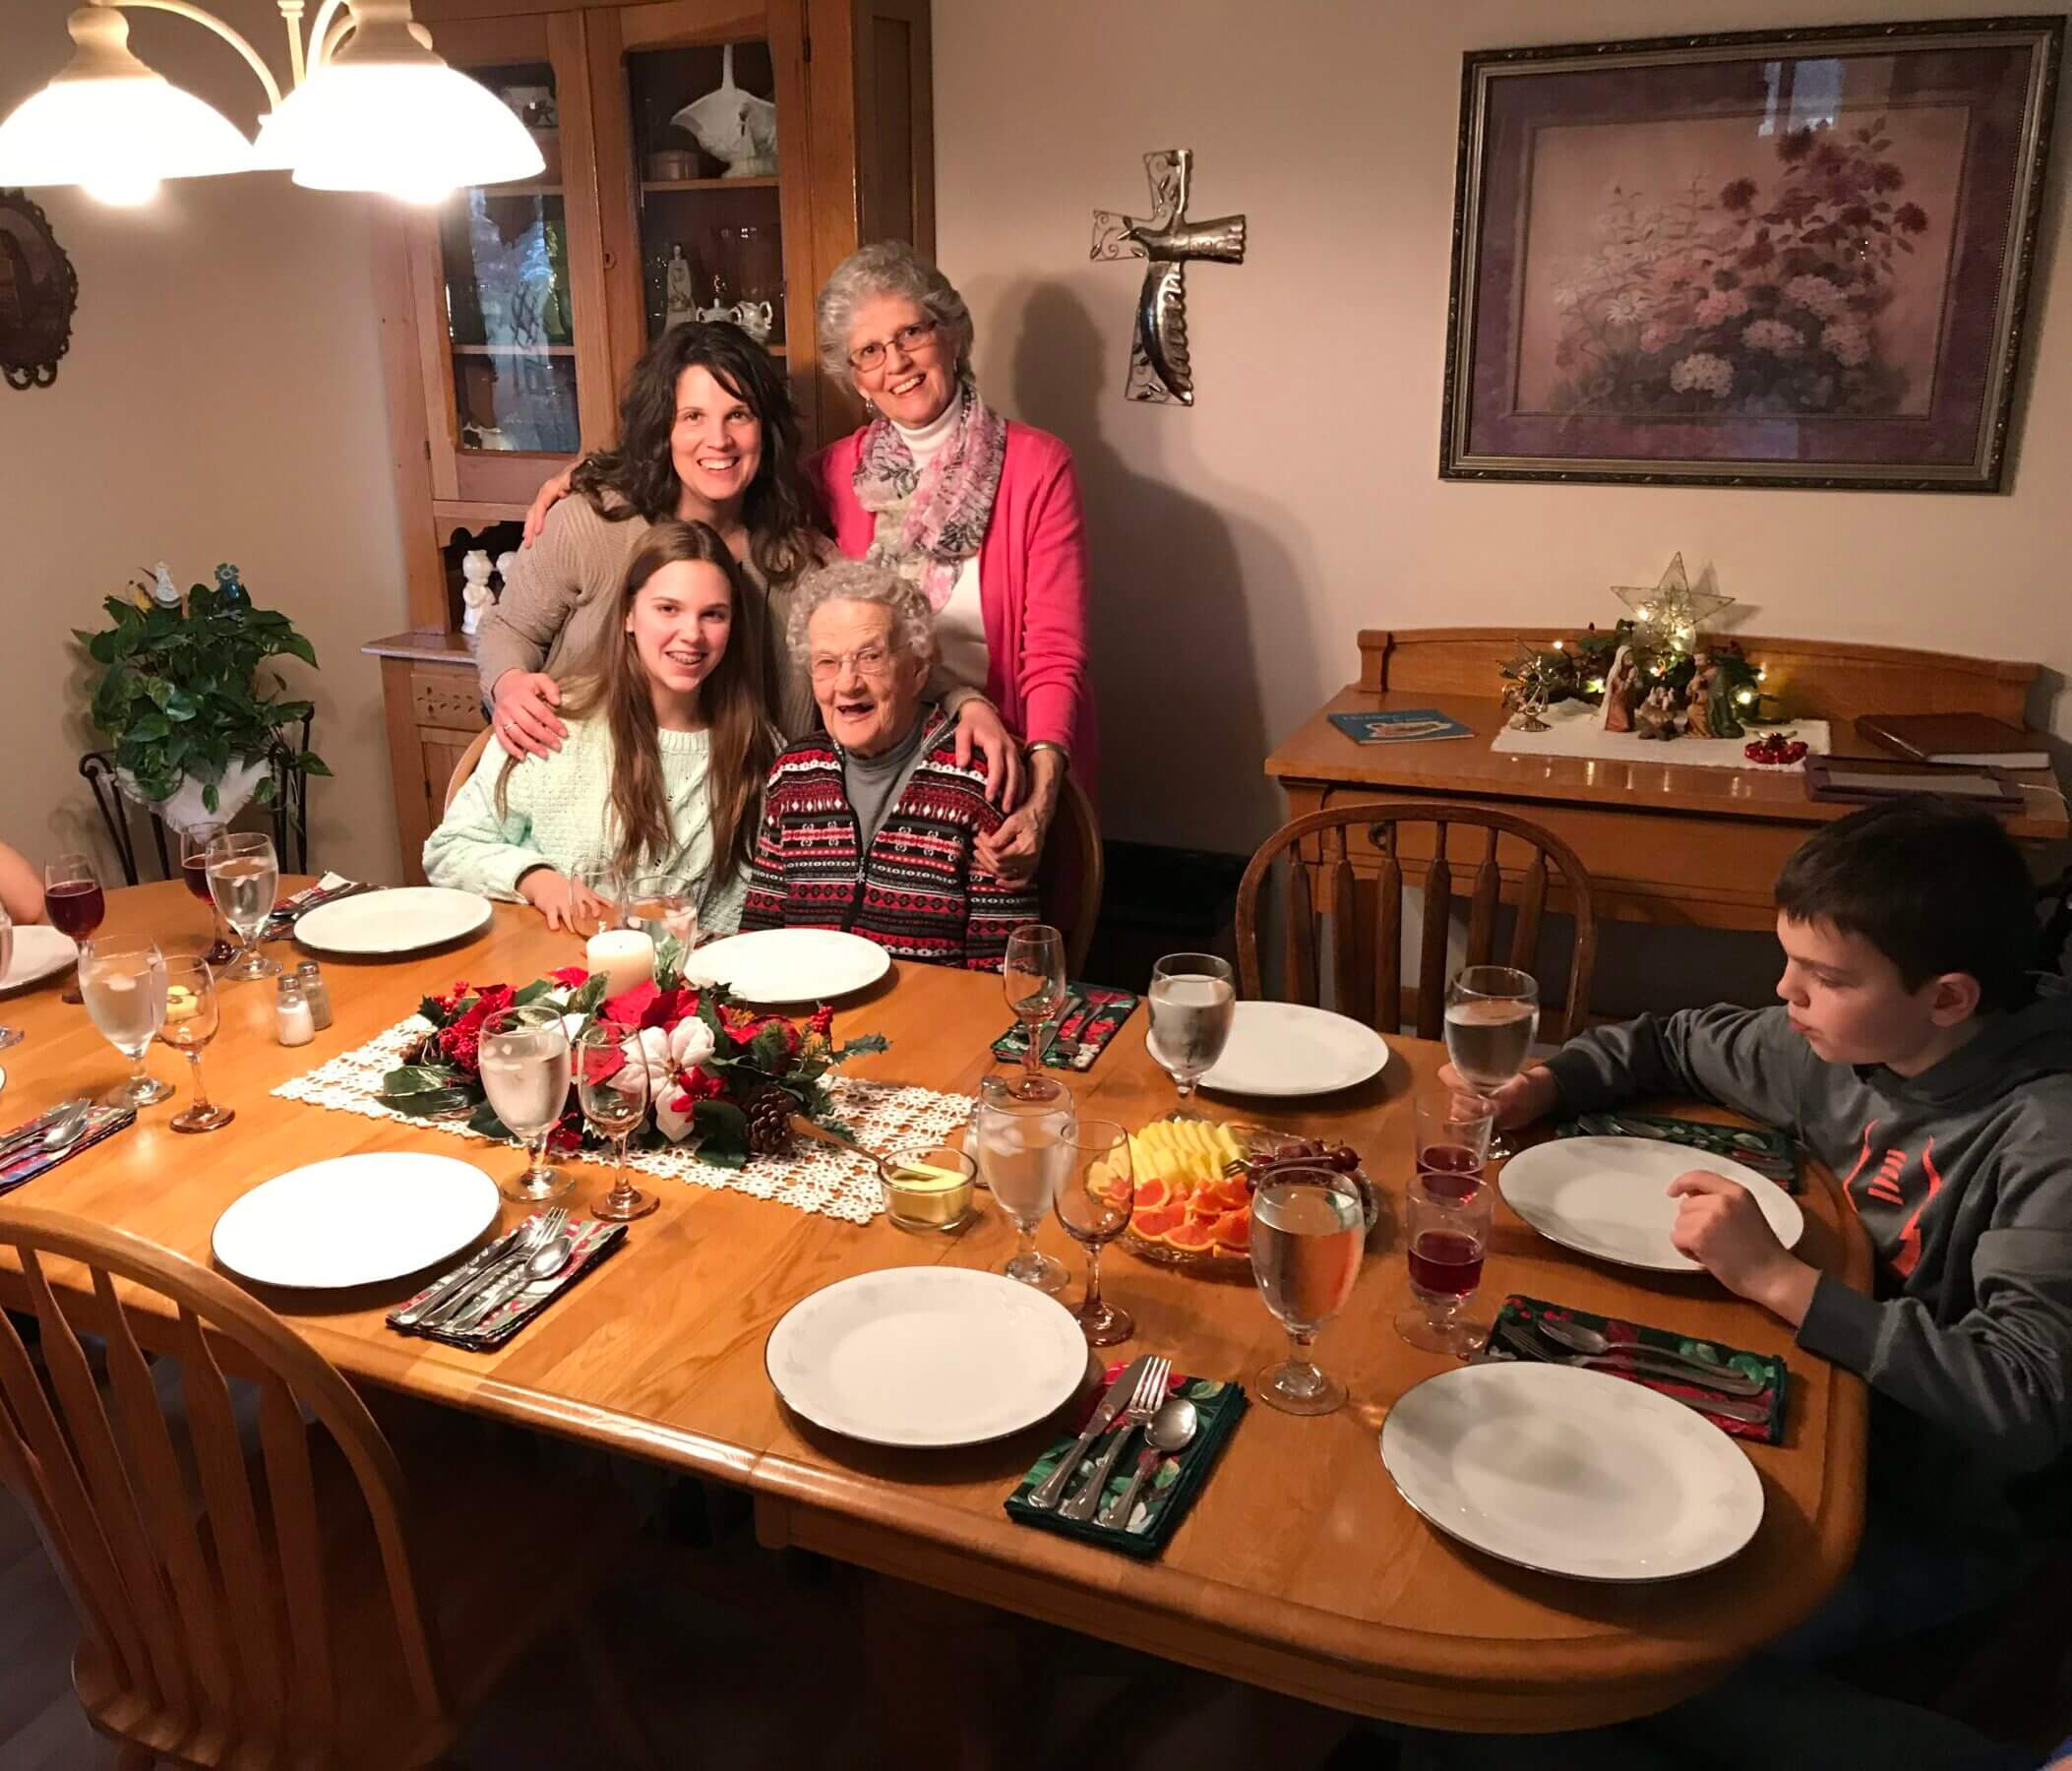 My family getting ready to eat dinner at Grandma's house